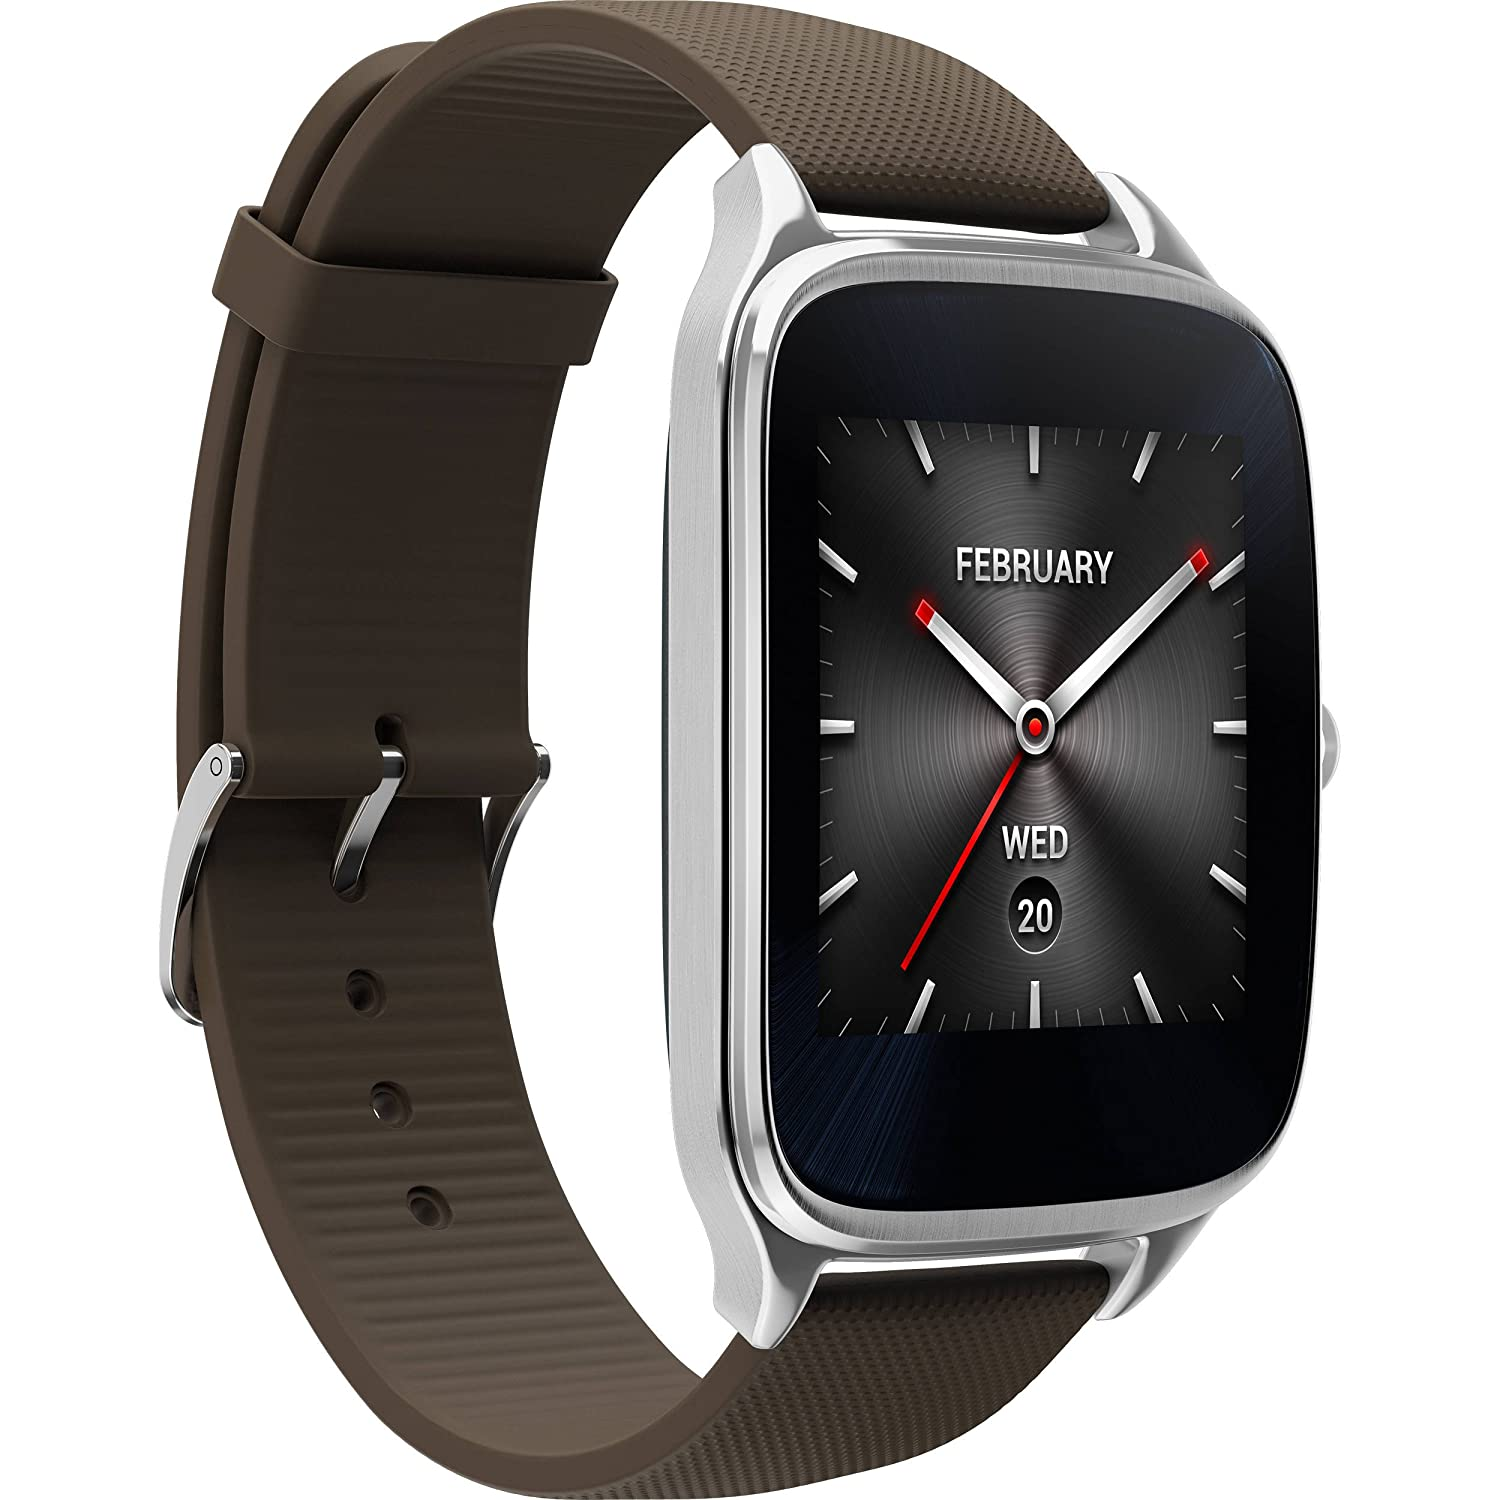 The ASUS ZenWatch 2, Affordable, Attractive, Brown, Time